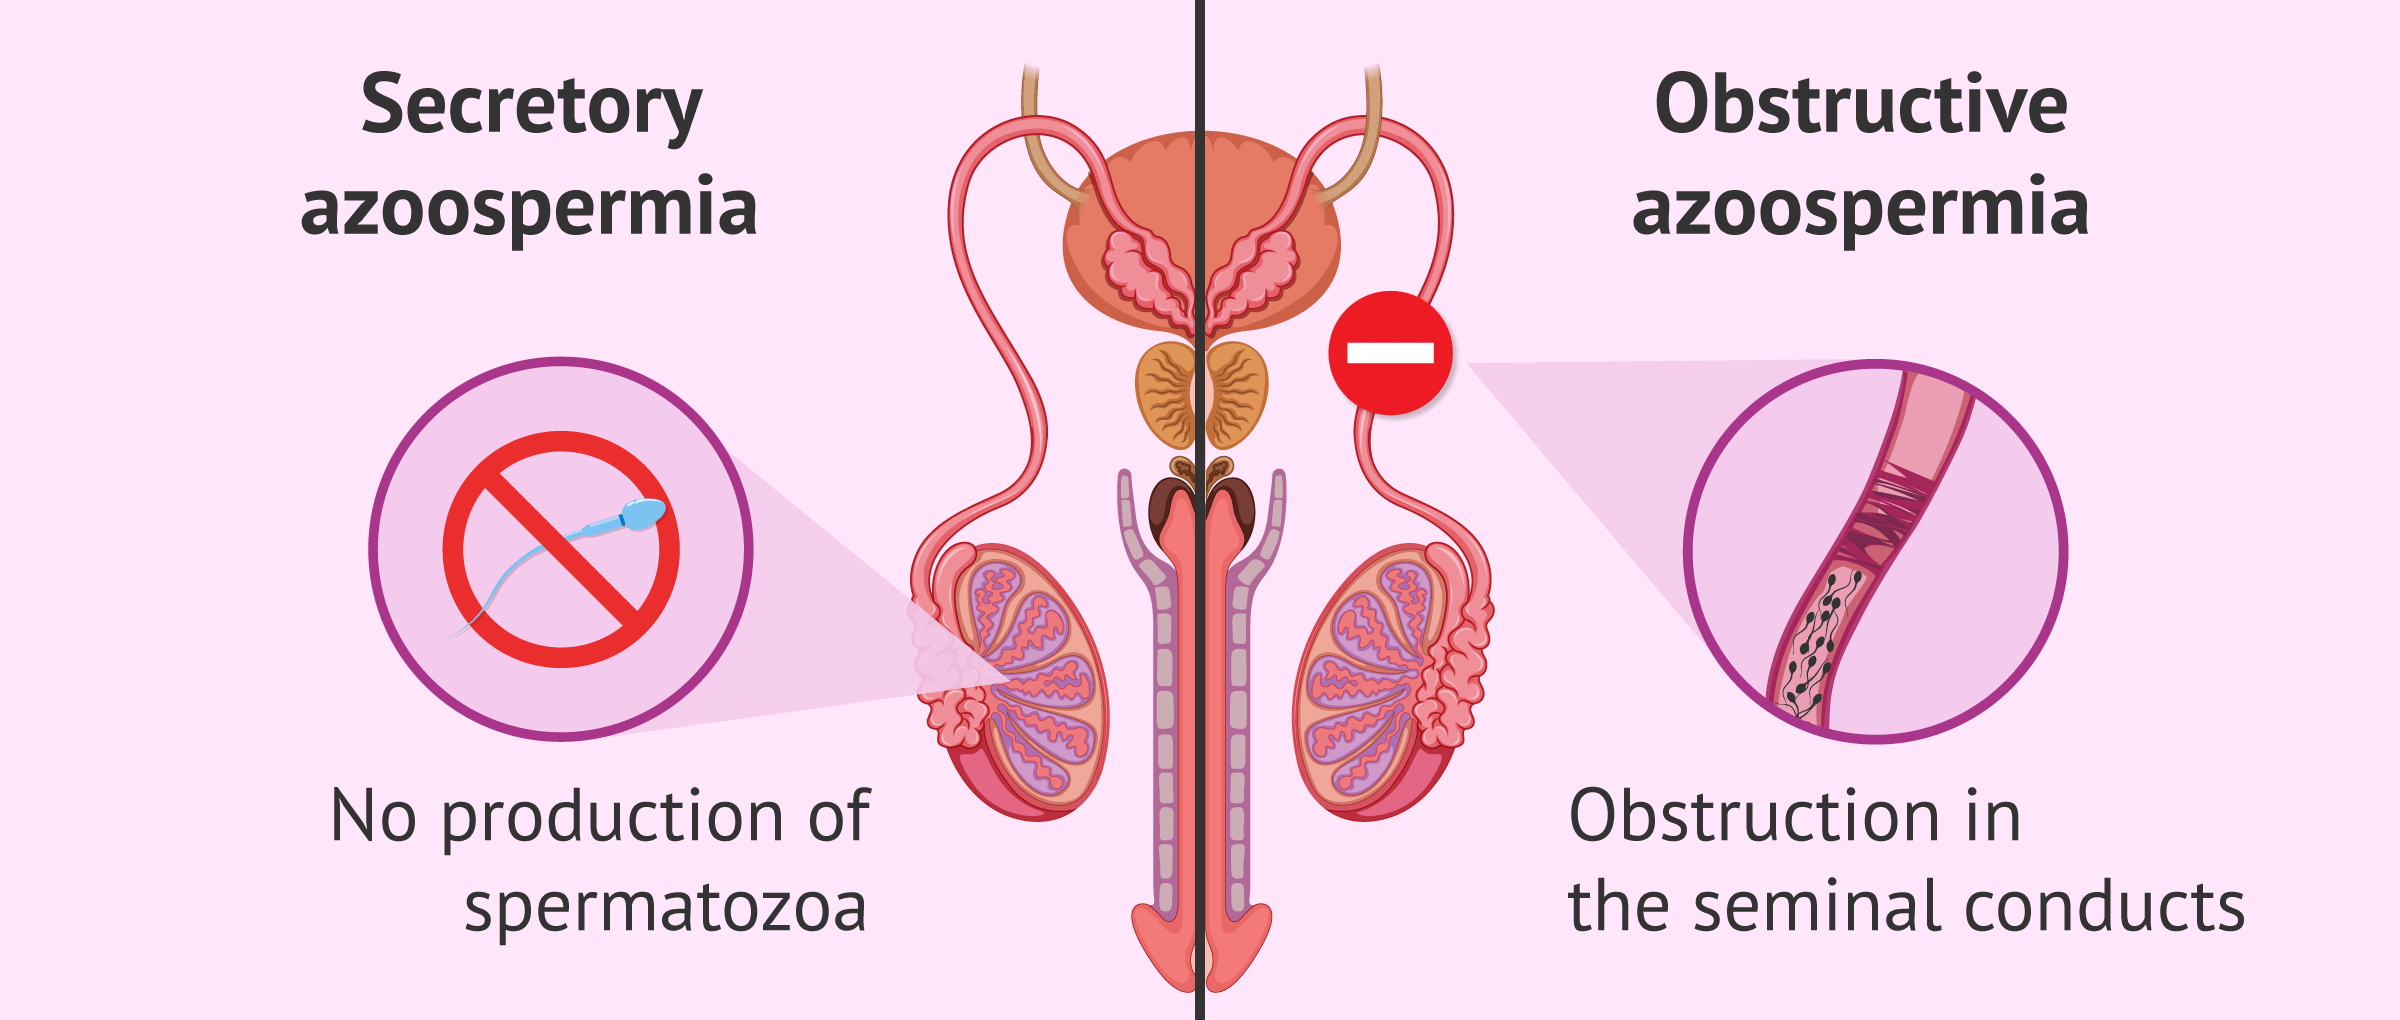 Difference between types of azoospermia